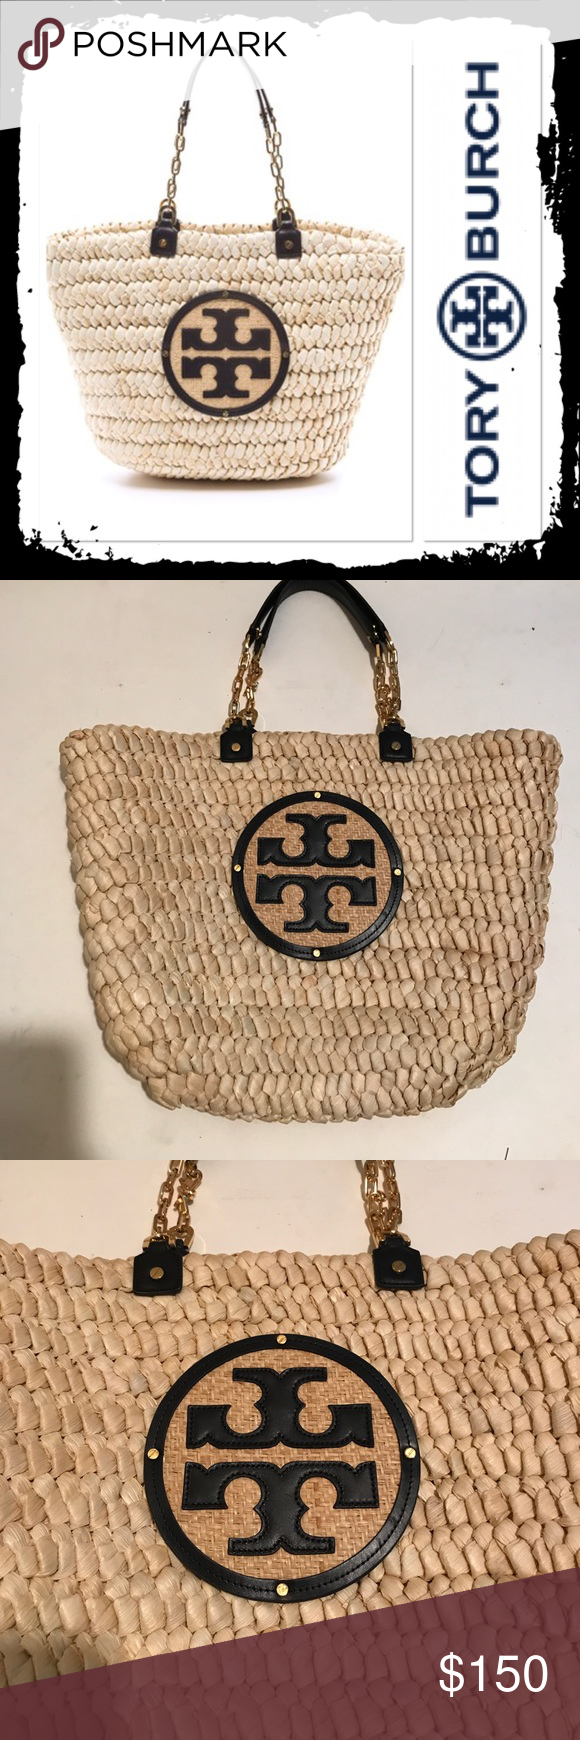 a895996e55b NWOT Tory Burch Audrey Tote Never been used Tory burch straw tote with  oversized logo 13